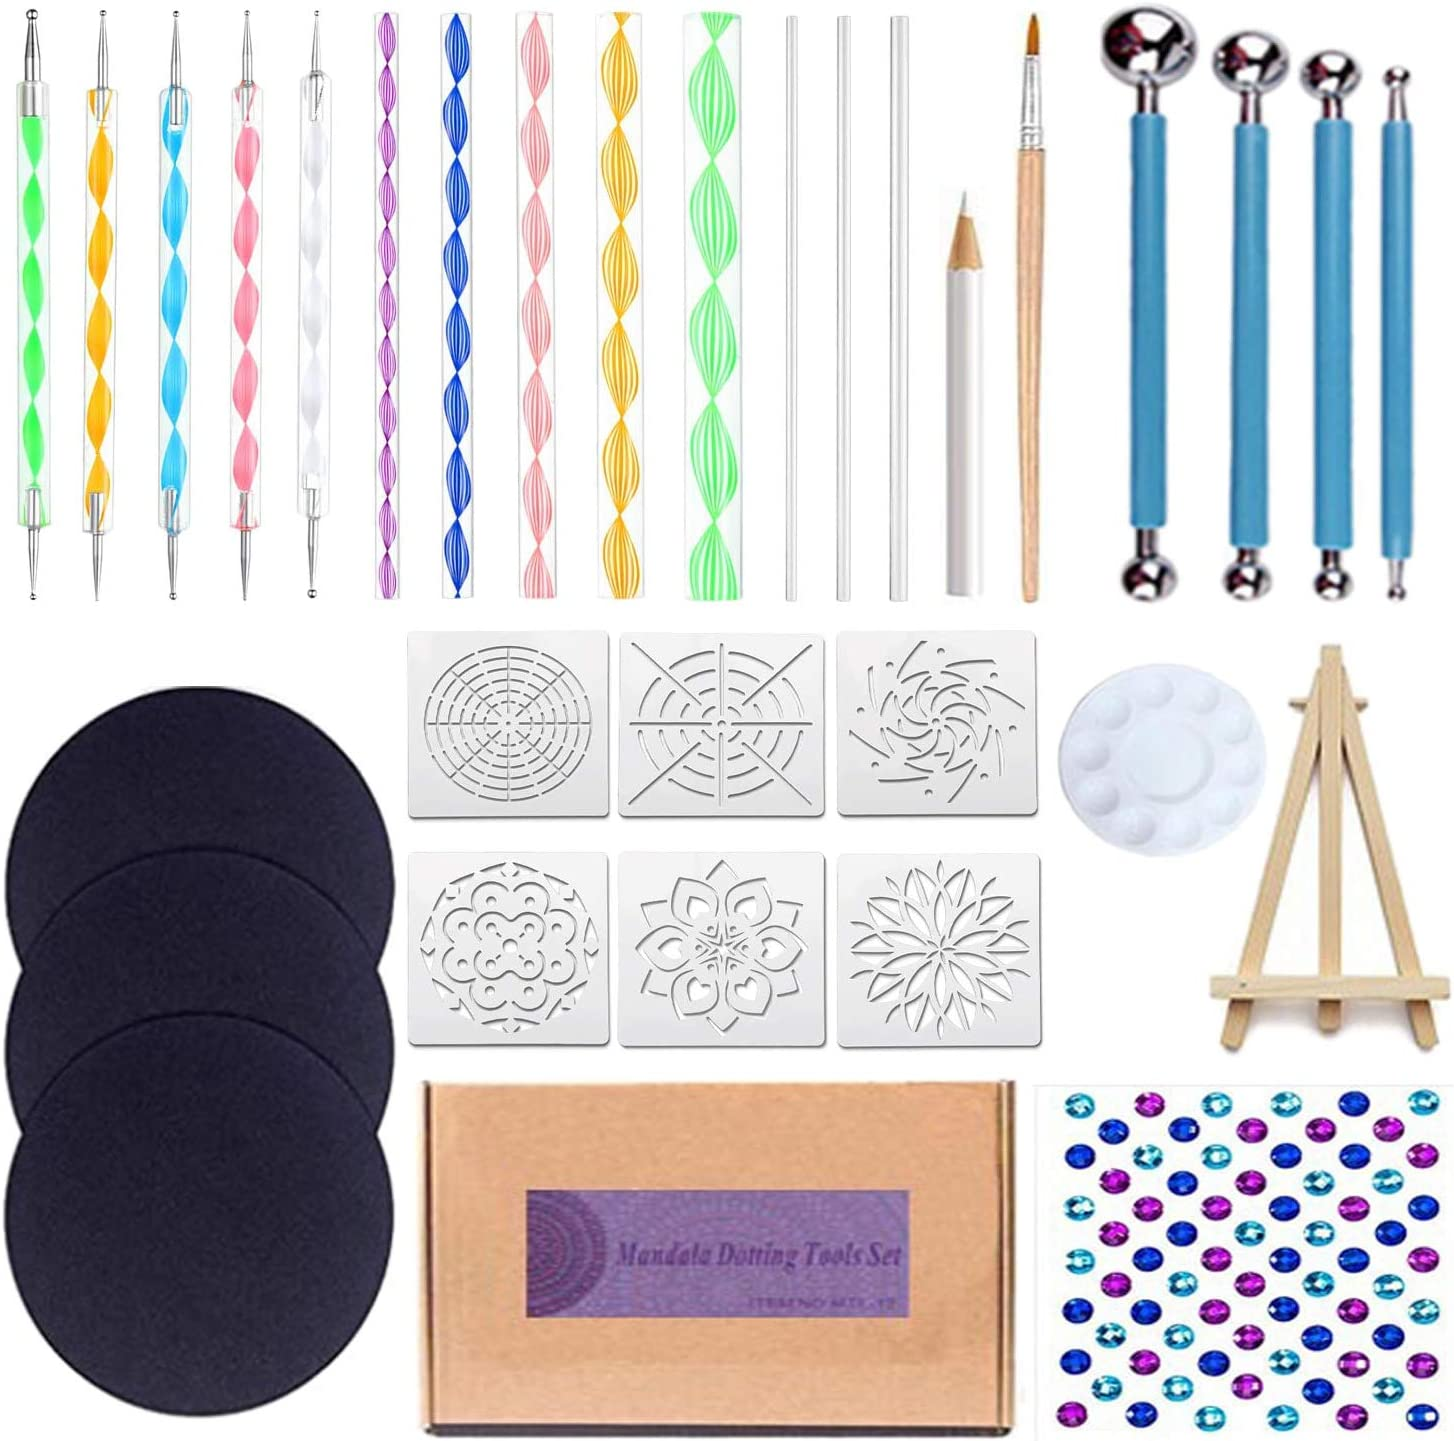 EWONICE Professional Mandala Dotting Tools 3 with Limited price sale excellence Cardboards Set